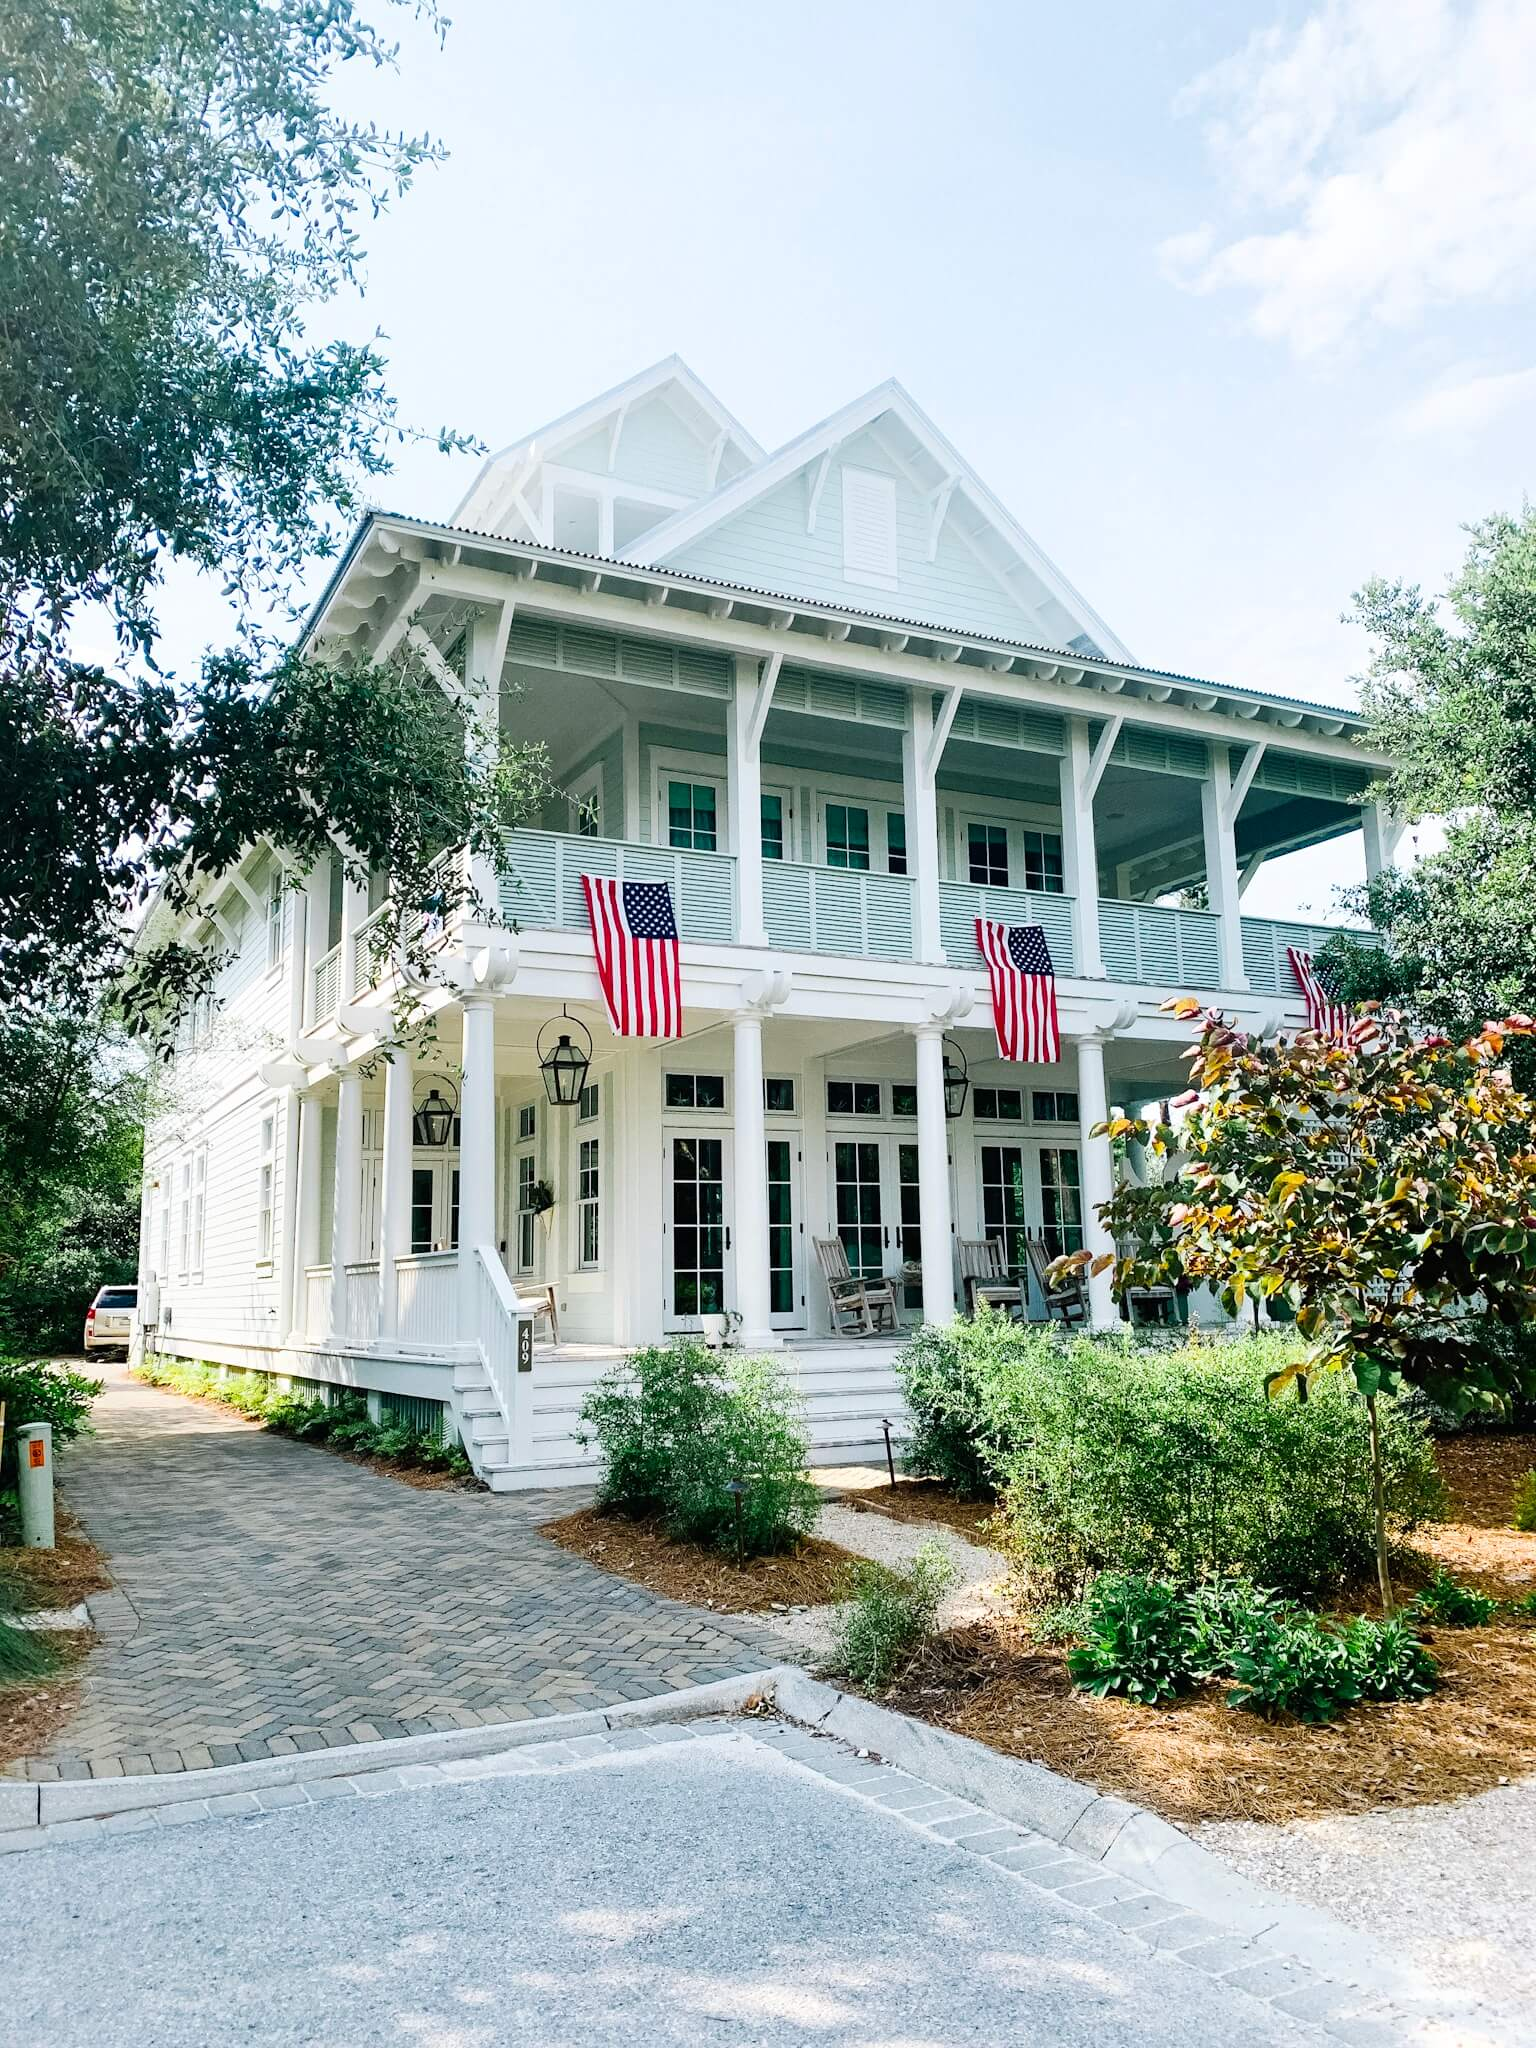 Seaside, Florida travel guide | Style Your Senses